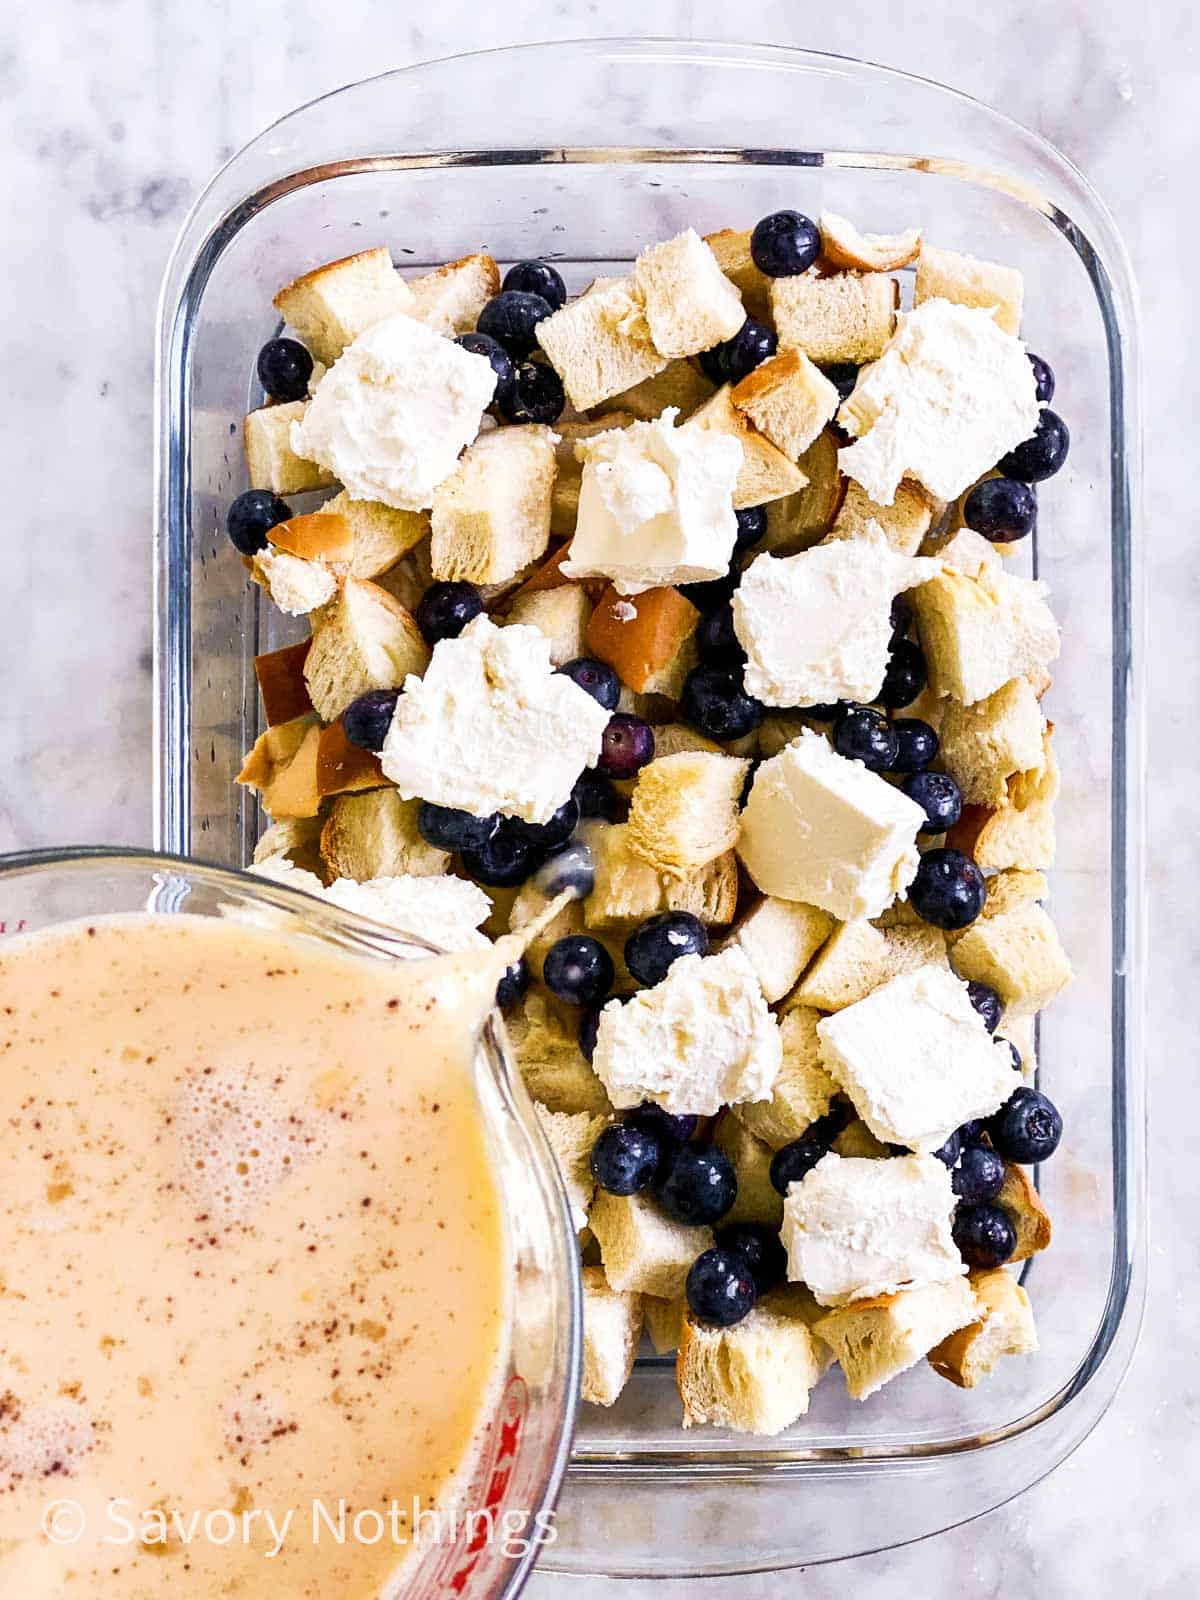 egg and milk mixture pouring over blueberry French toast casserole ingredients in glass dish